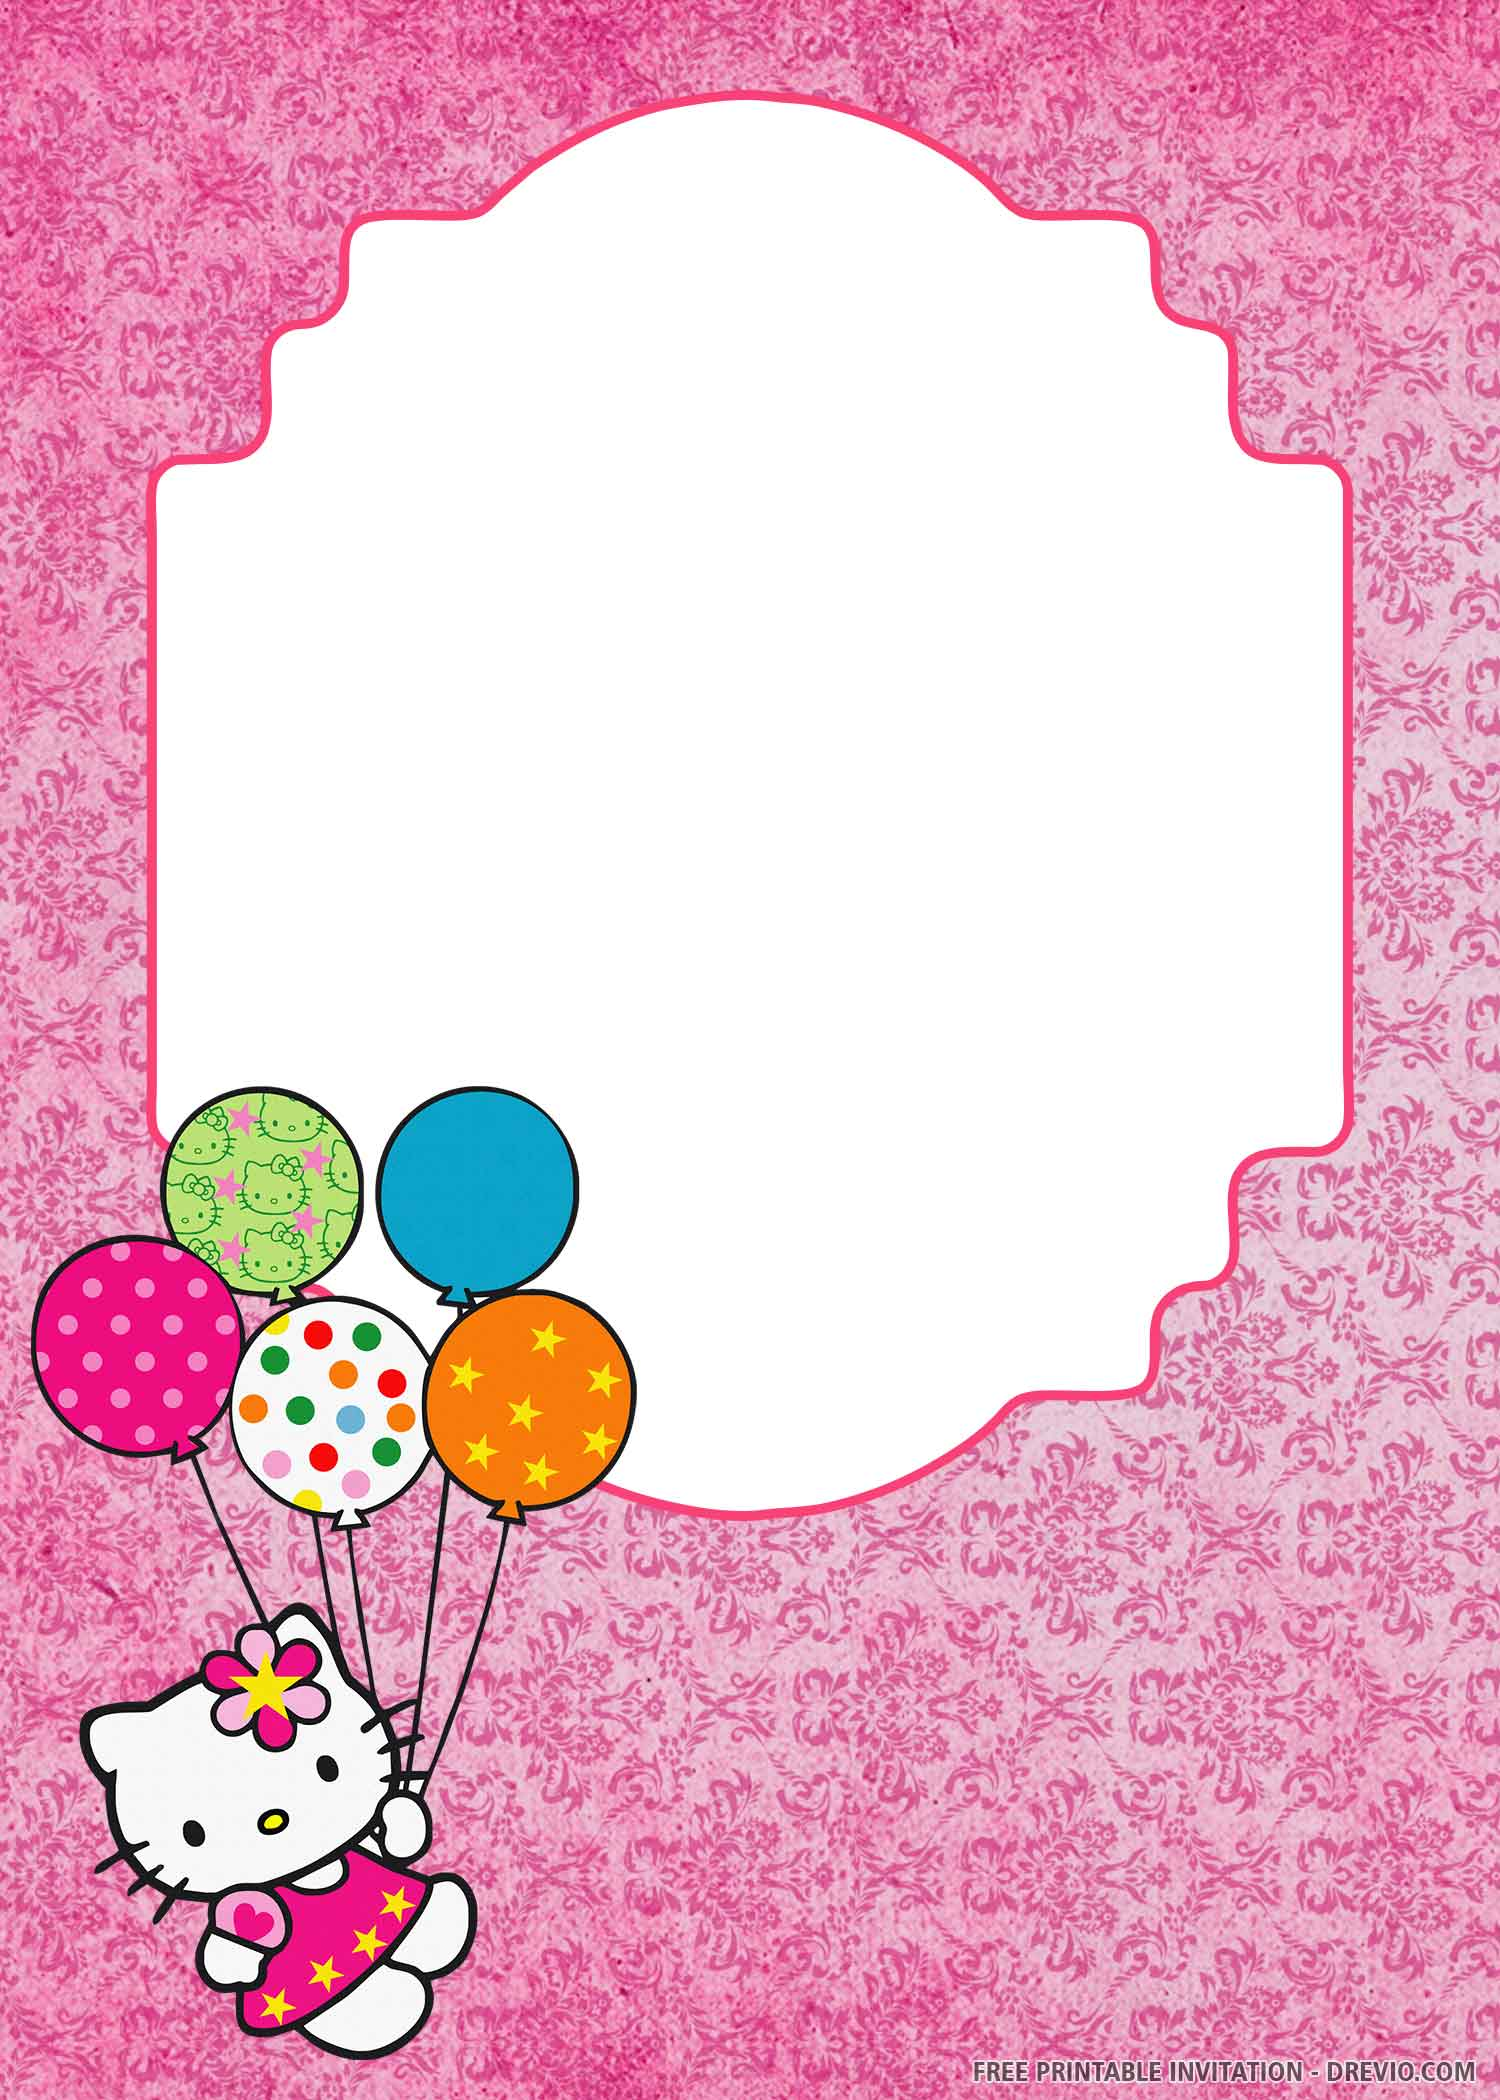 Free Printable Lovely Hello Kitty Birthday Invitation